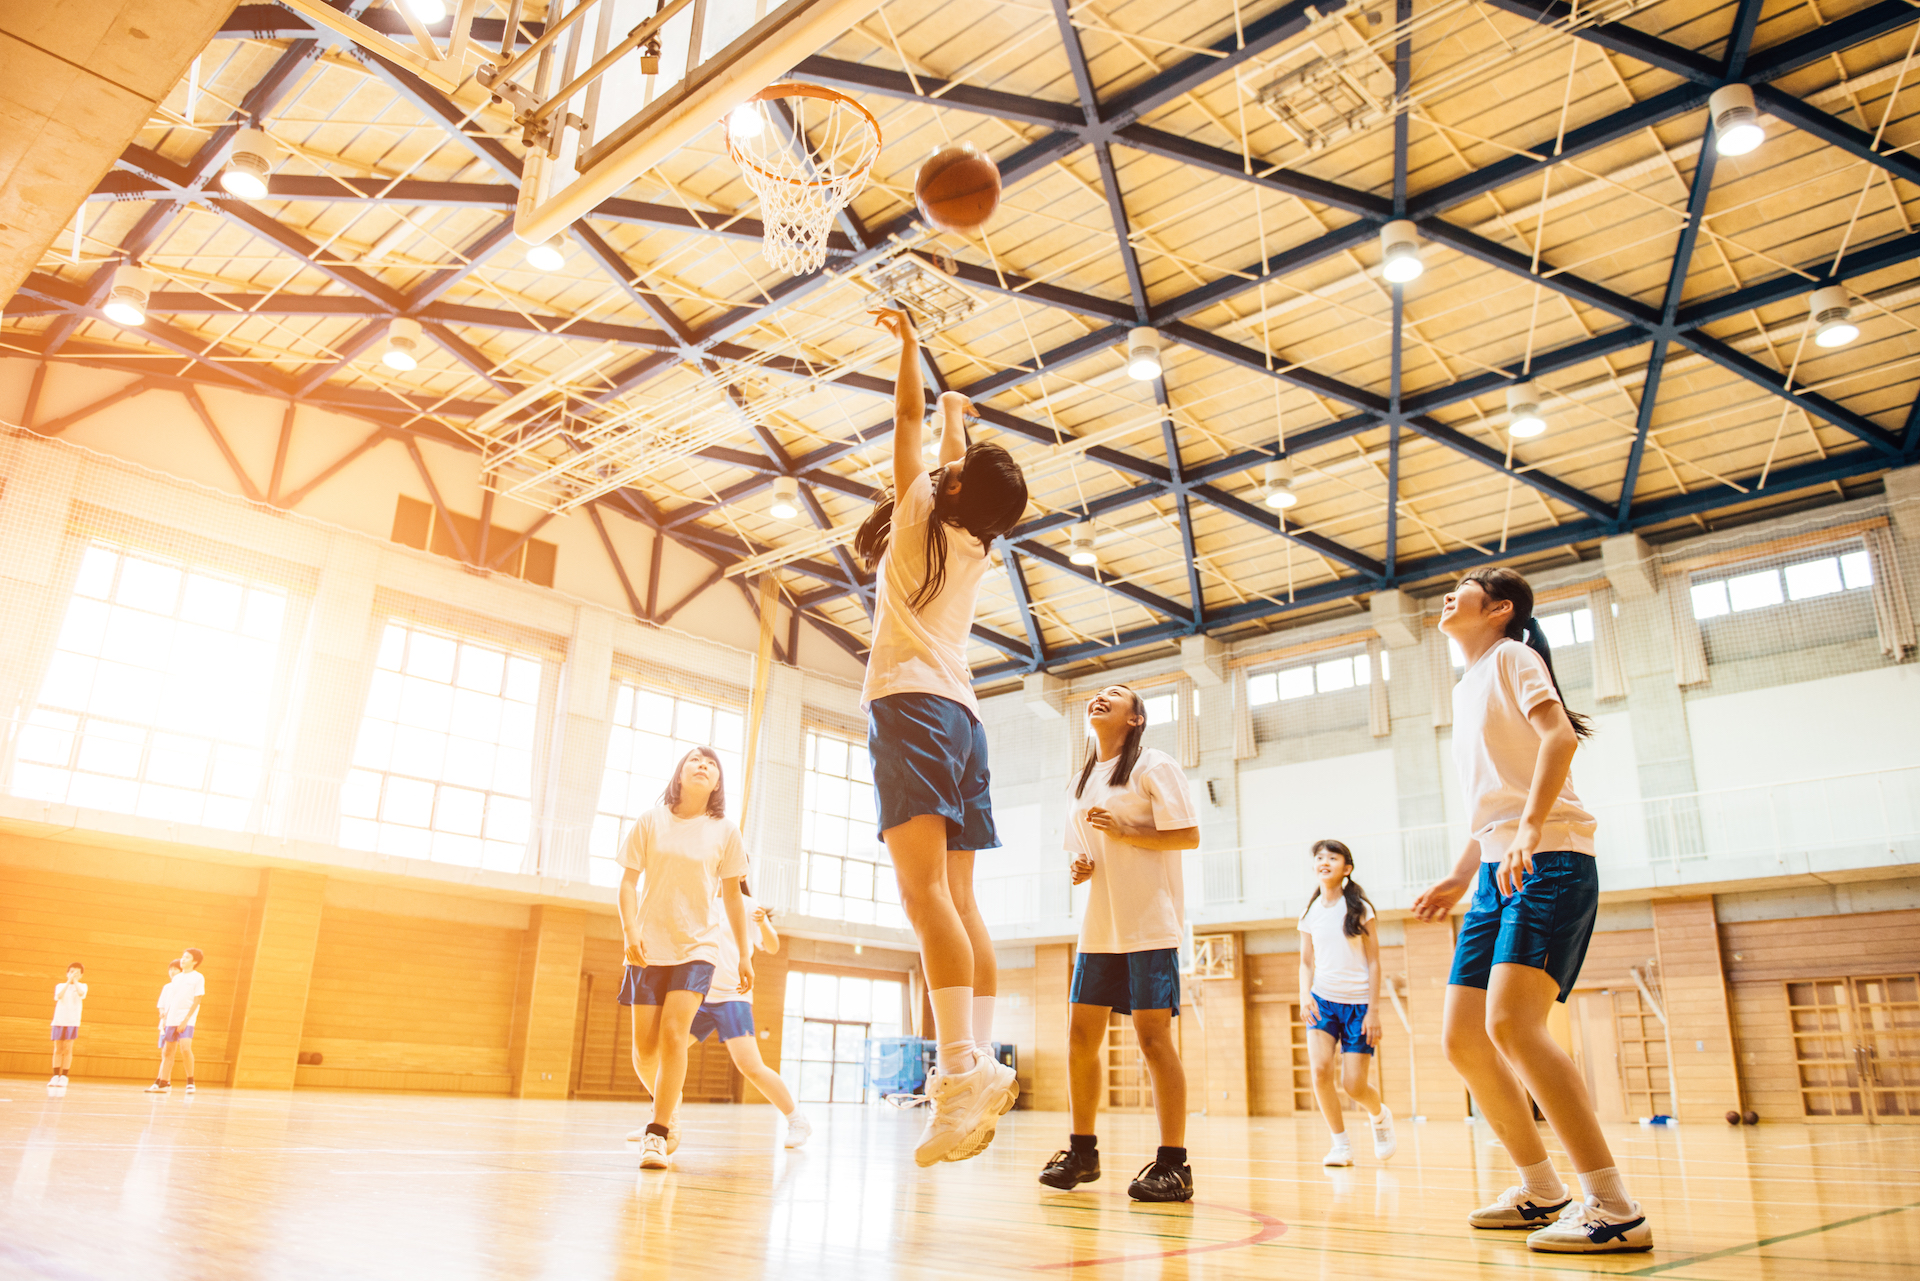 Japanese Junior High School girl friends playing basketball in the School GYM.